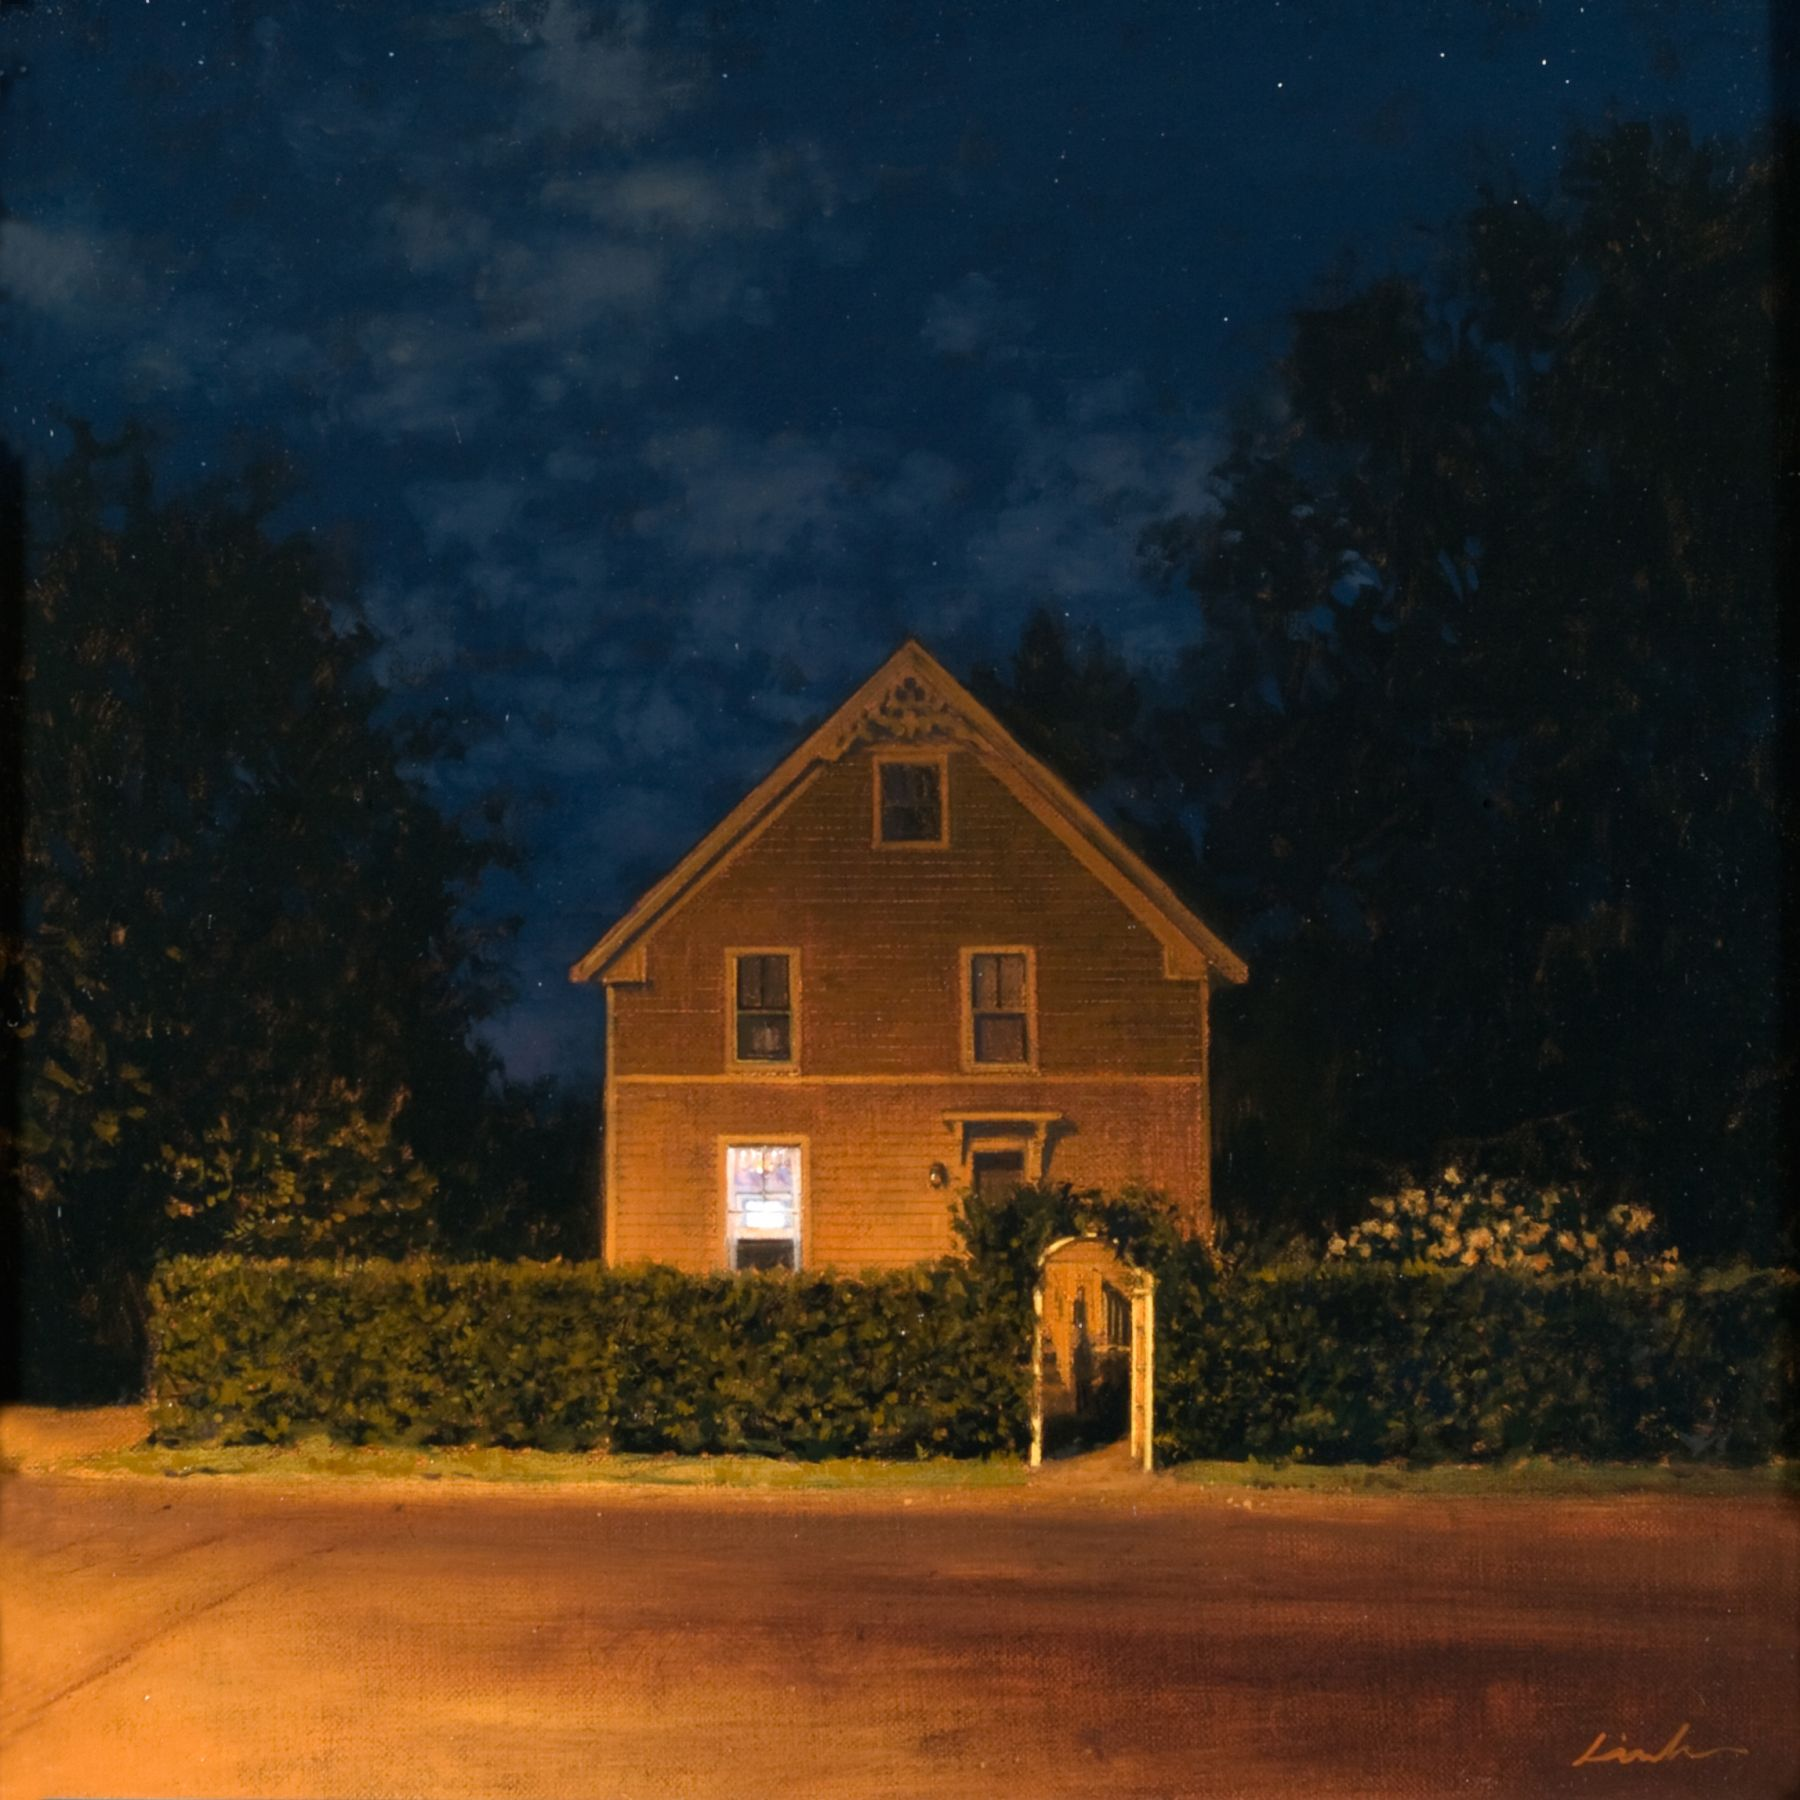 Linden Frederick, Gate (SOLD), 2008, oil on panel, 12 1/4 x 12 1/4 inches